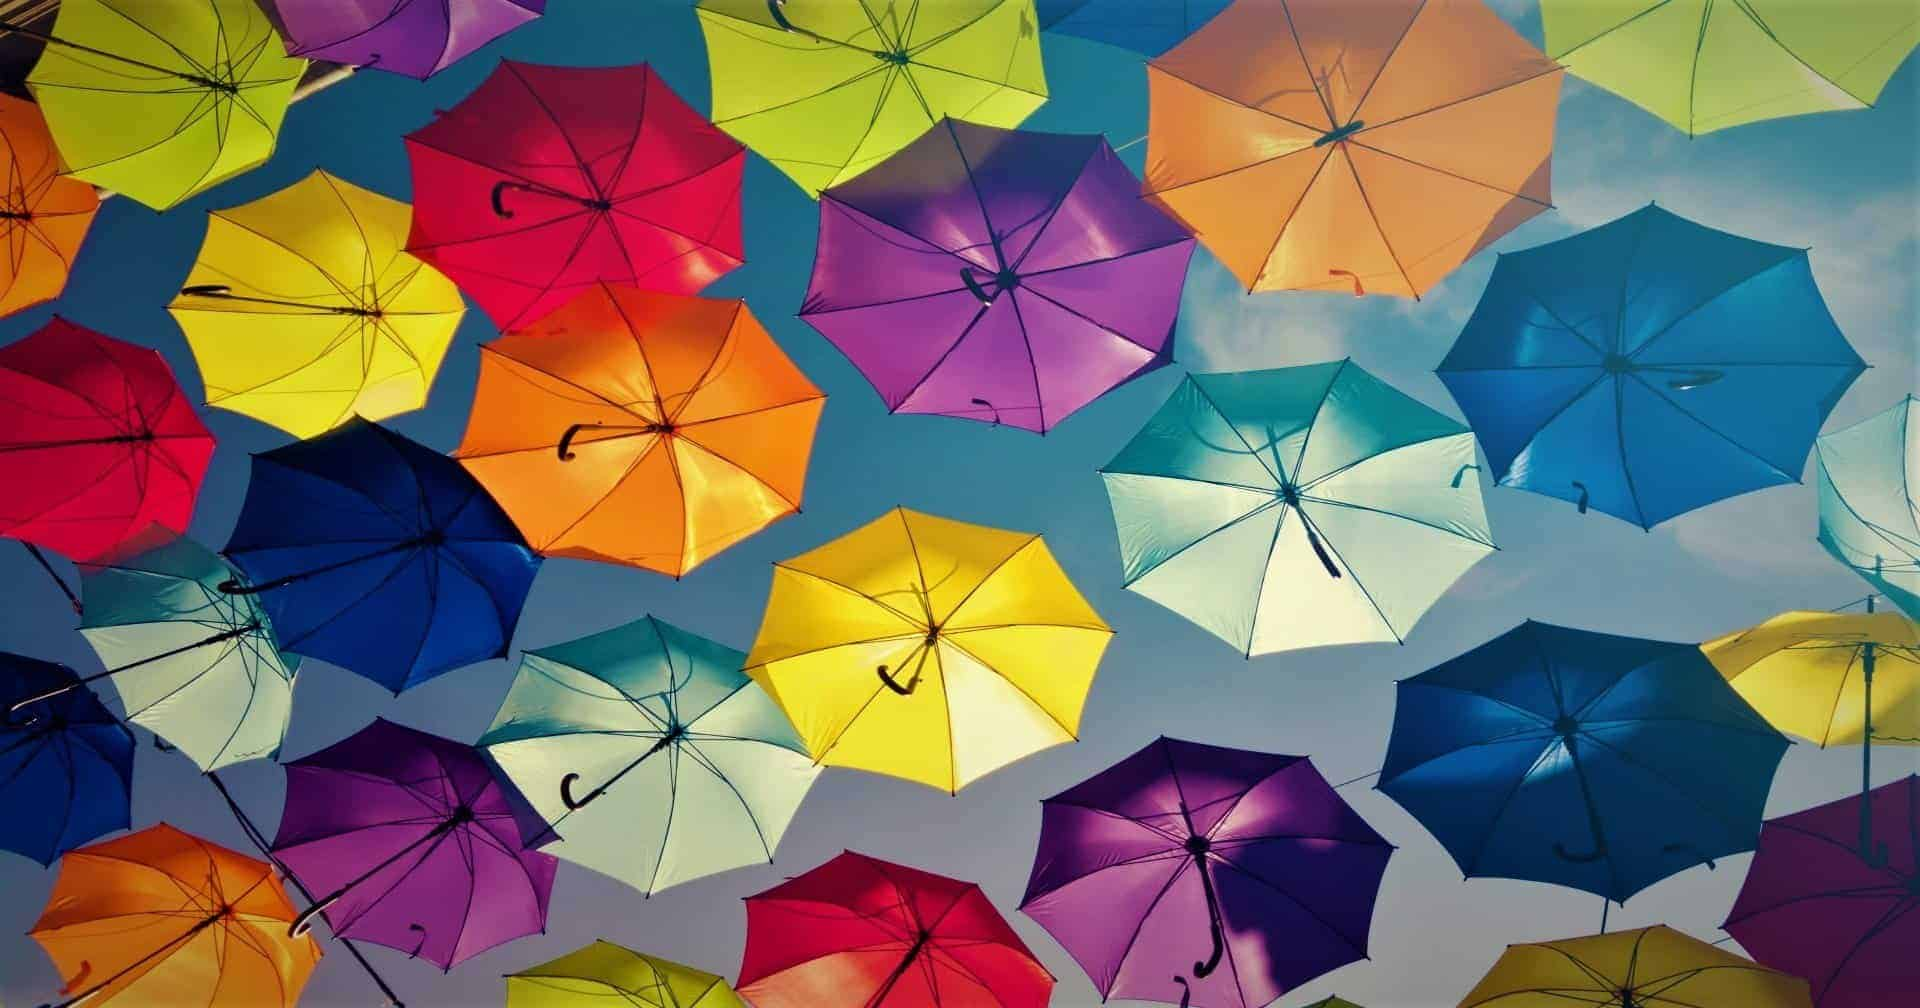 Best Travel Umbrellas to Buy